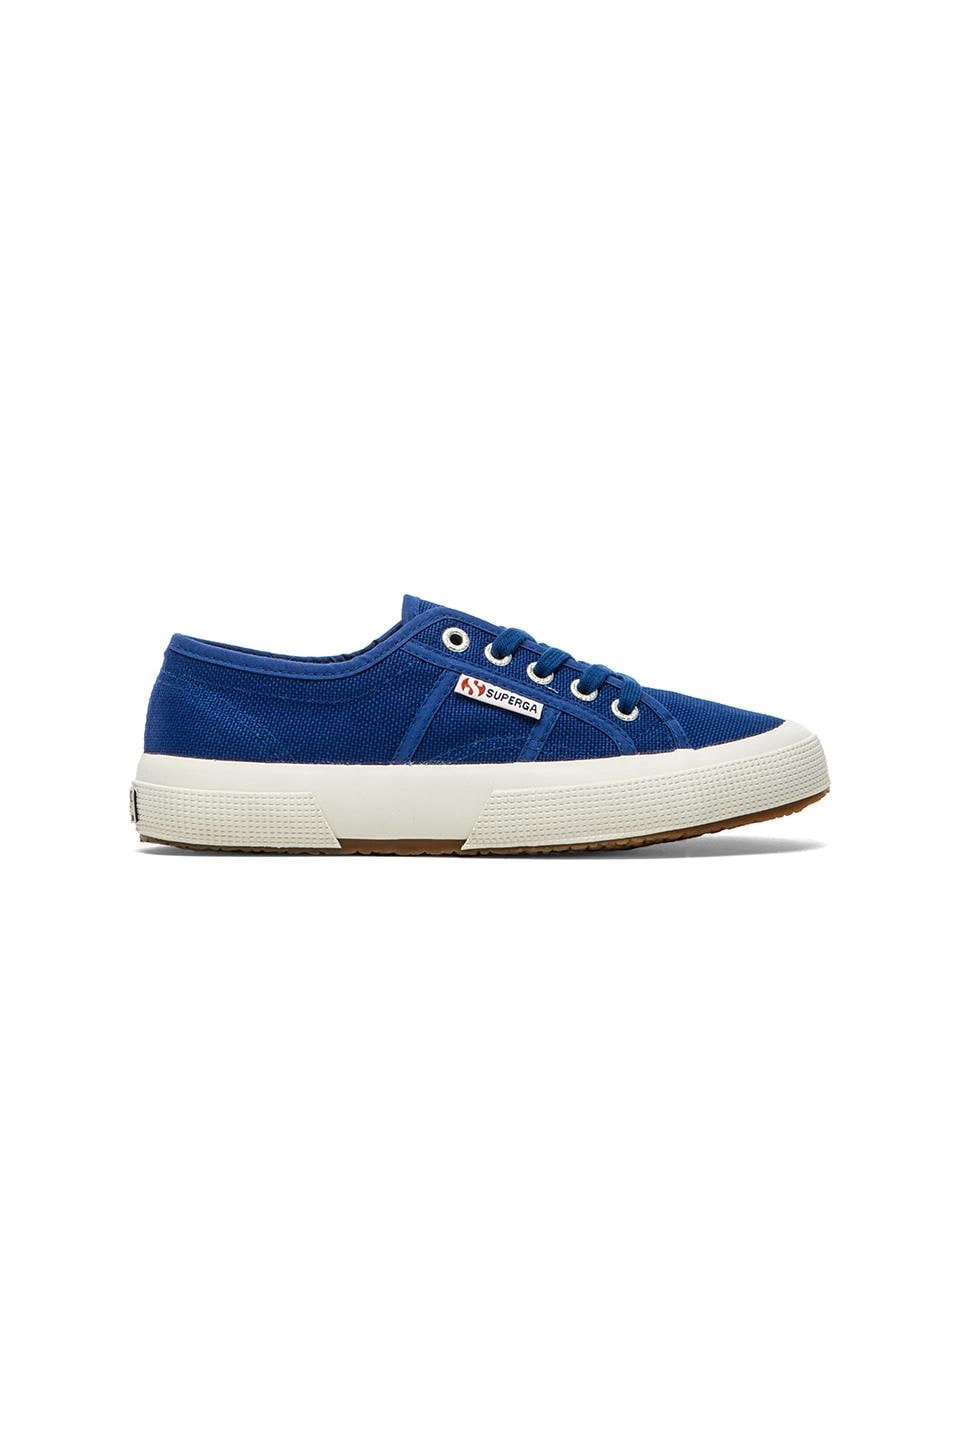 Superga Cotu Classic Sneaker in Intense Blue